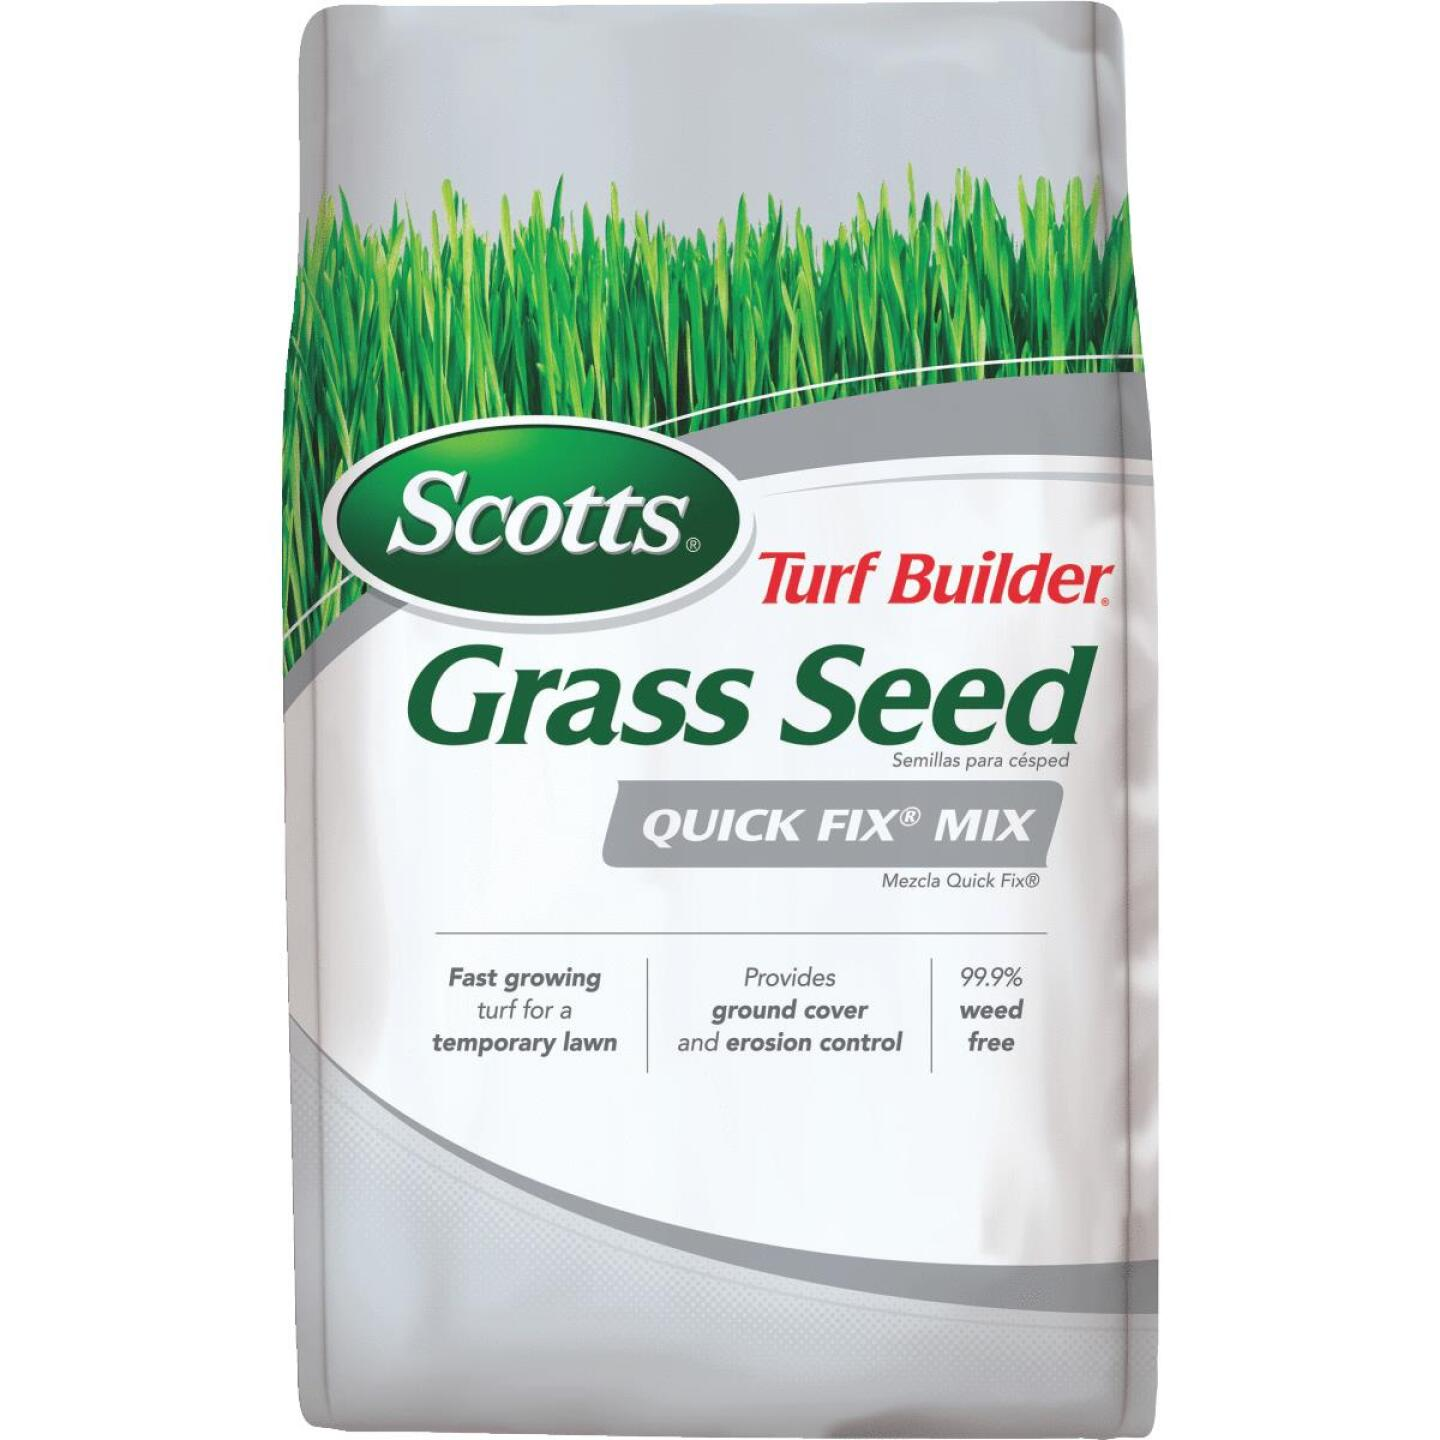 Scotts Turf Builder 3 Lb. 750 Sq. Ft. Coverage Blend Grass Patch & Repair Image 1